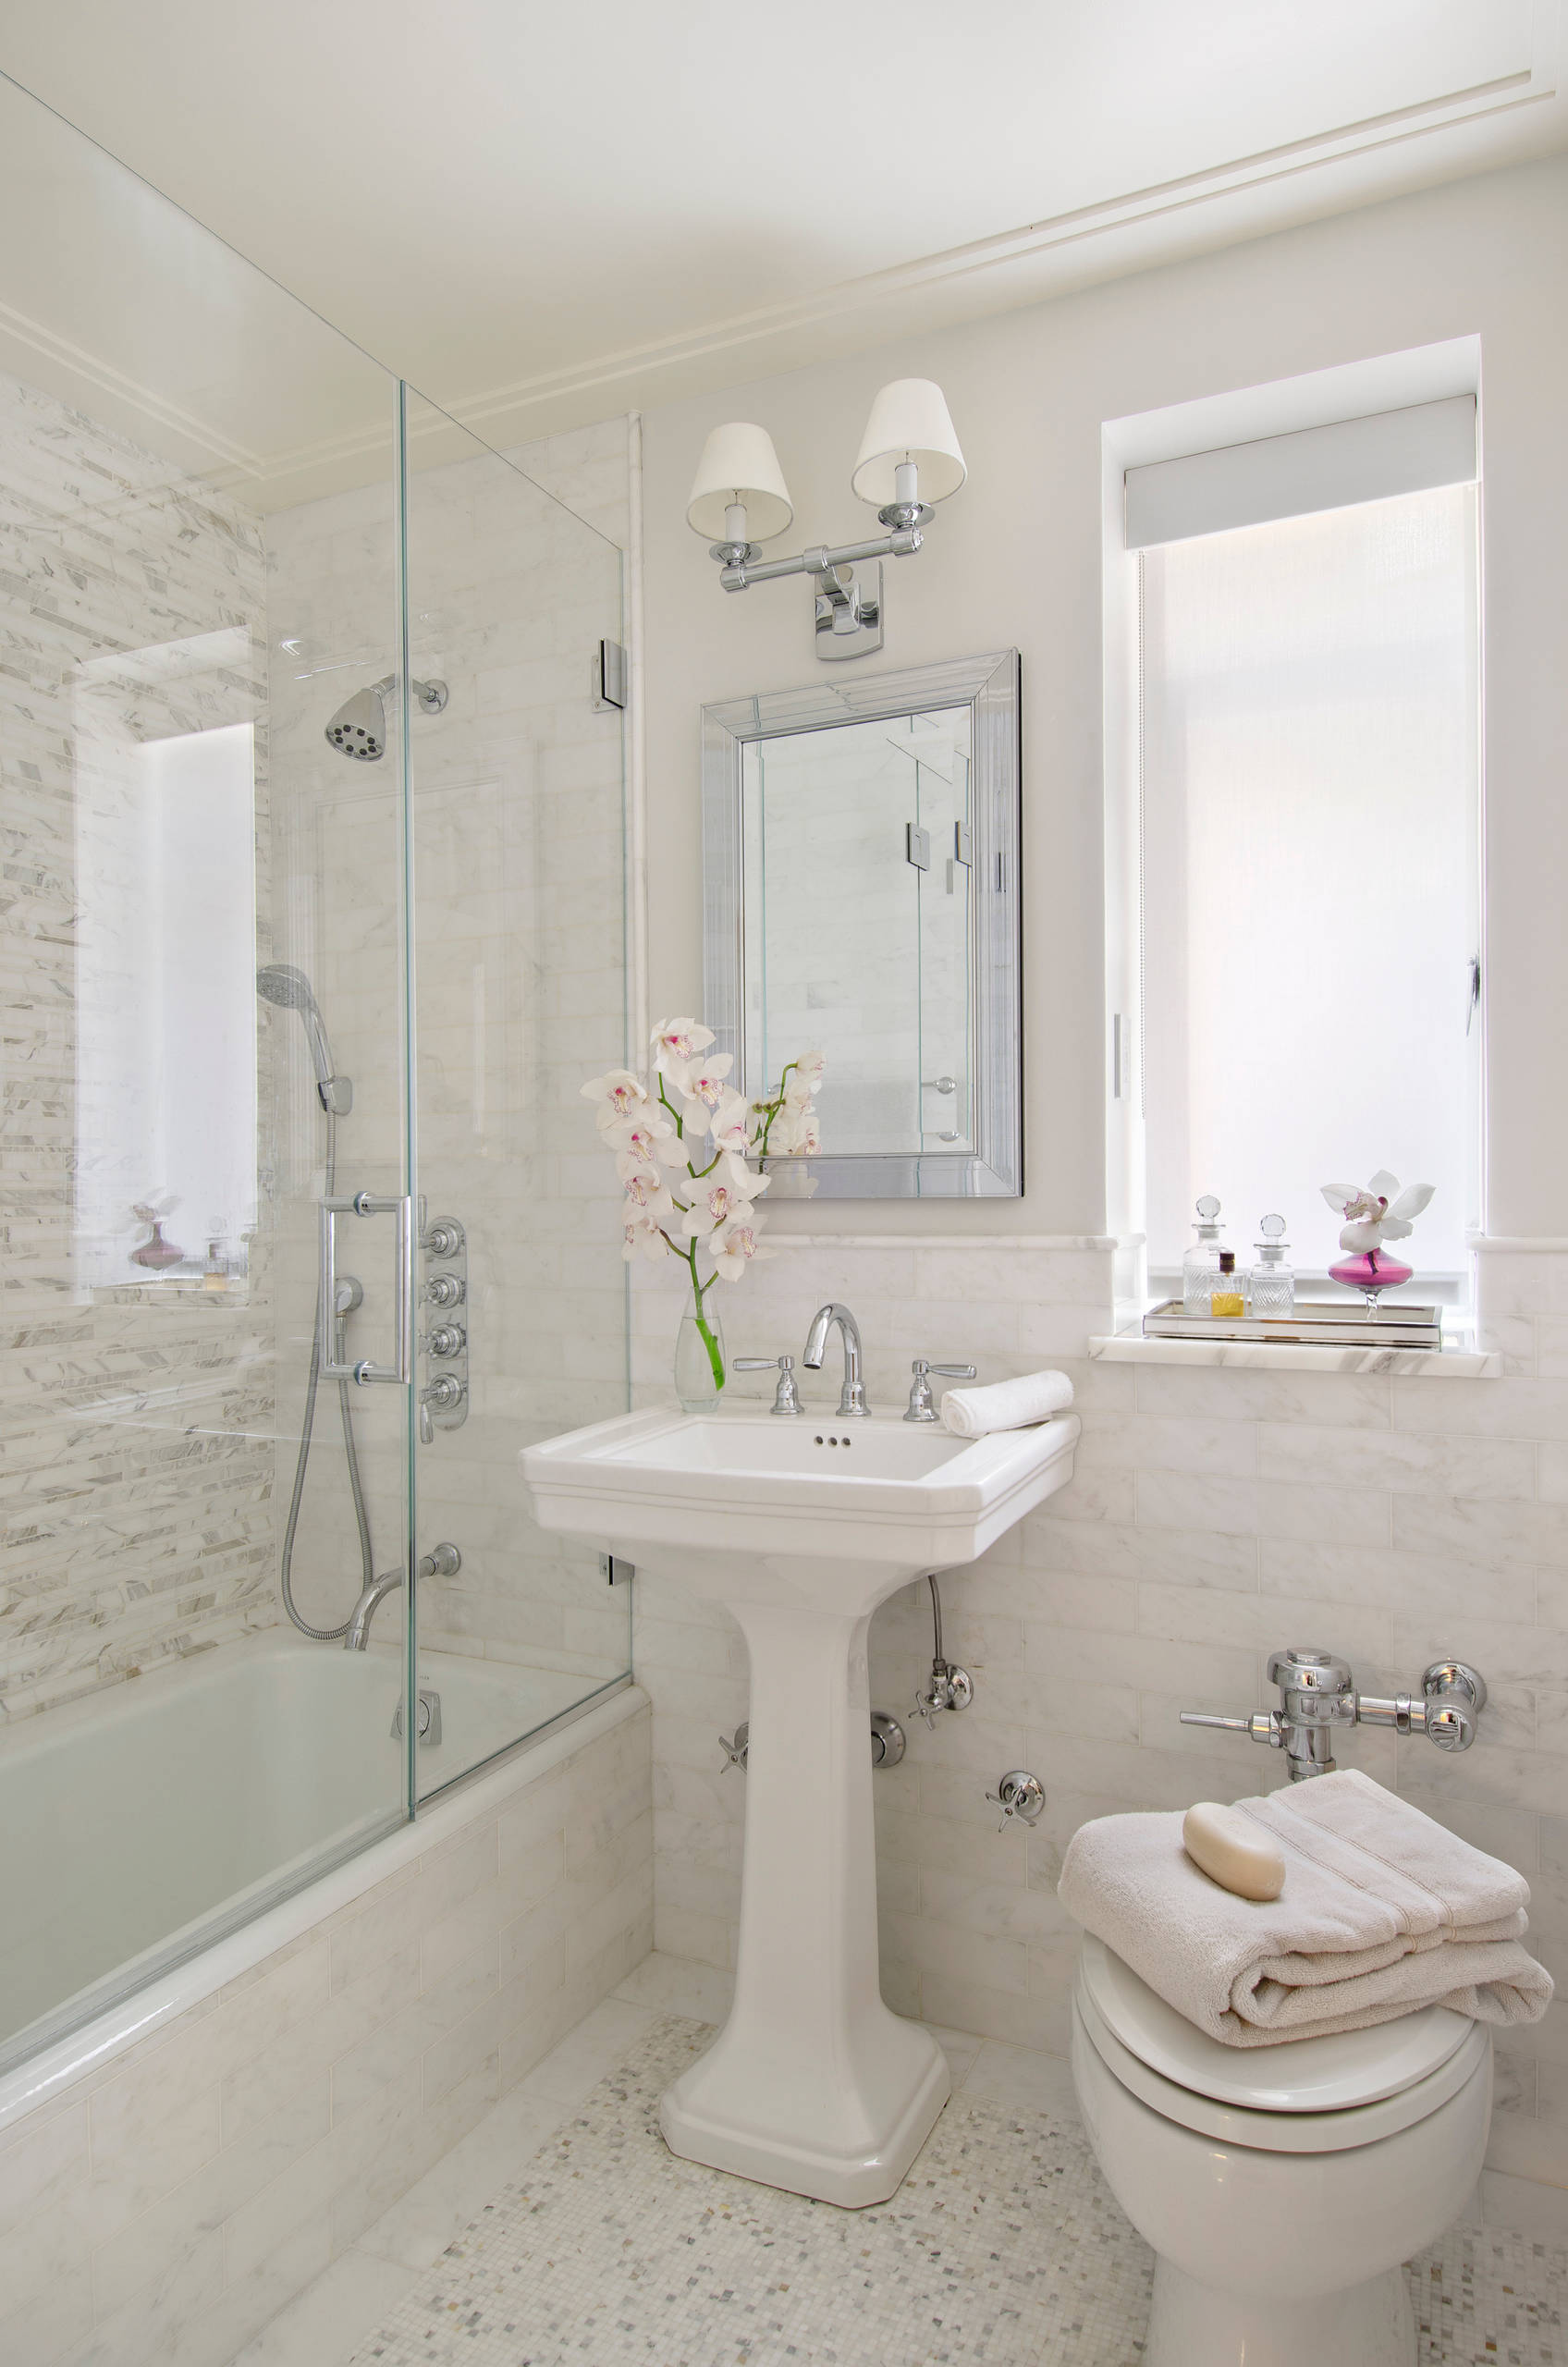 8 Beautiful Small Bathroom Pictures & Ideas - January, 8  Houzz